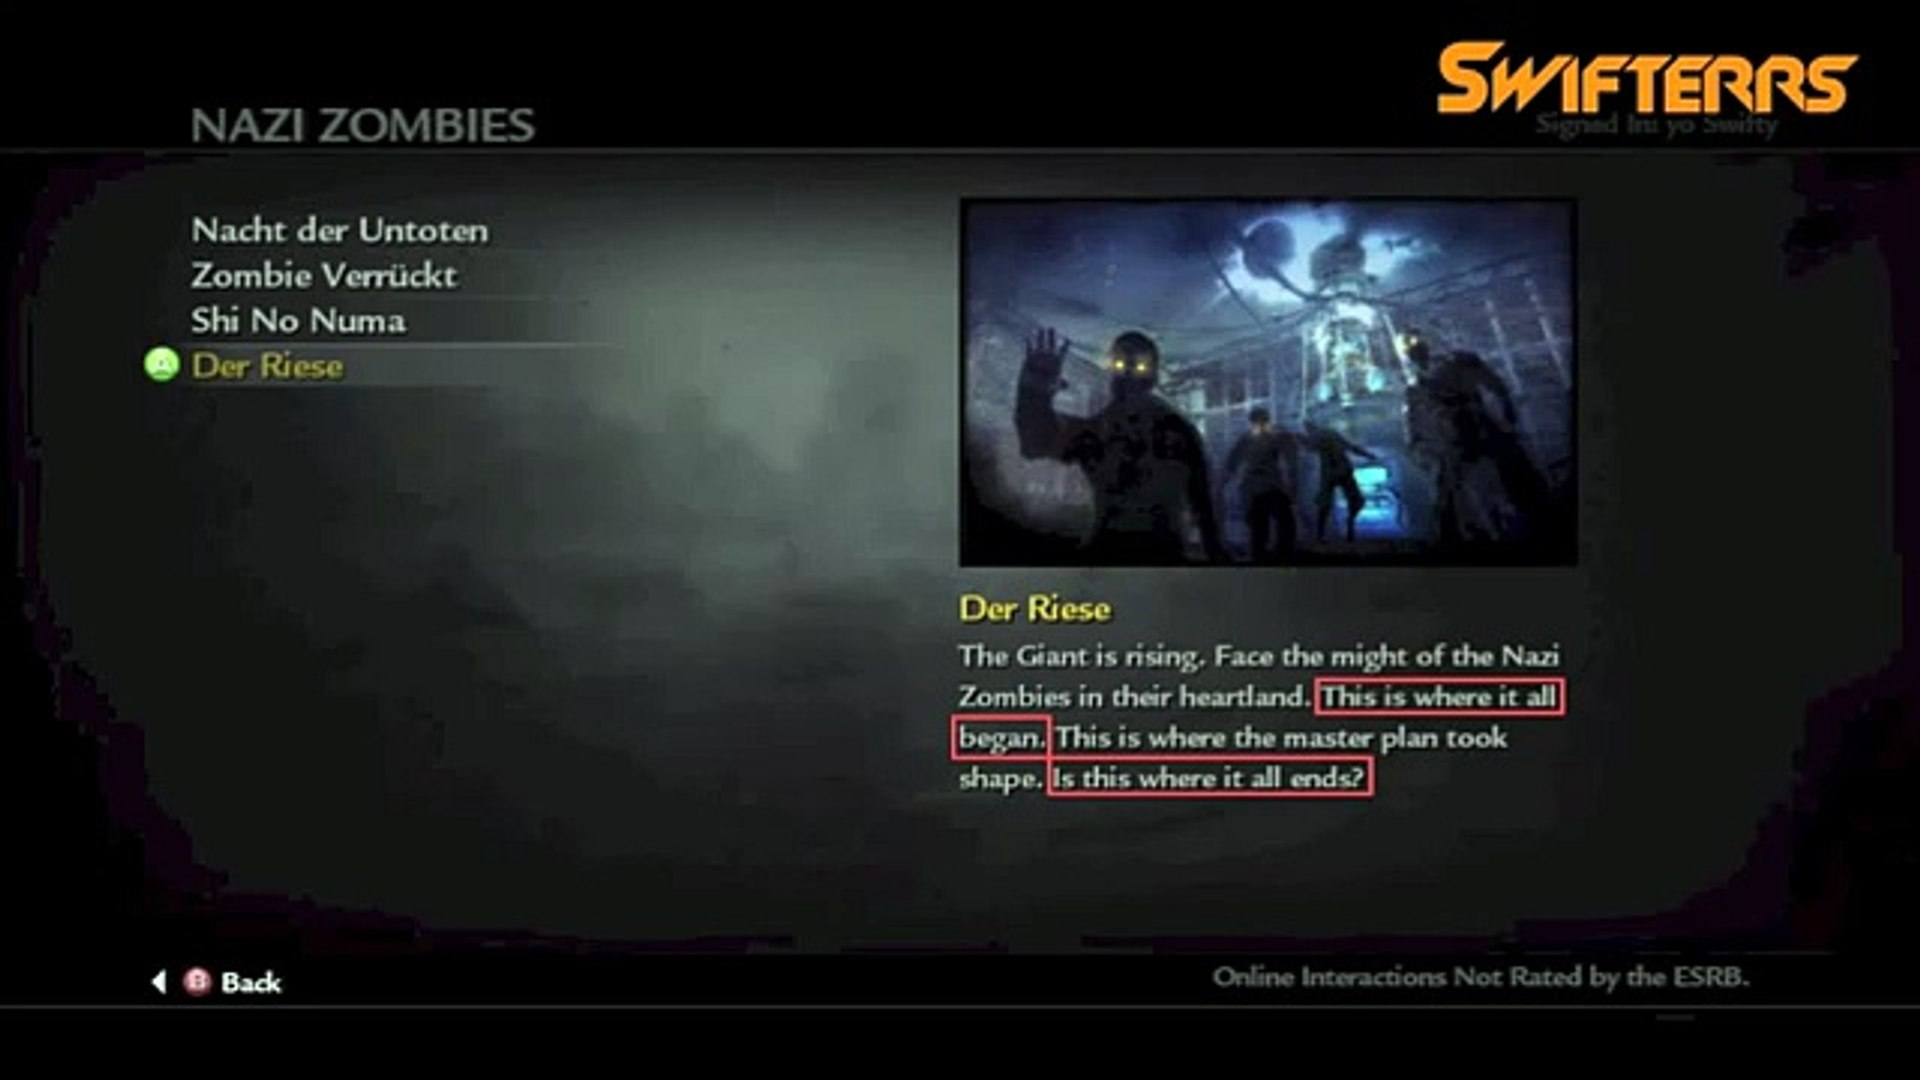 Black Ops 2 Zombies DLC MAP PACK 4 RETURNING TO DER RIESE ... on black ops moon map gameplay, call of duty black ops 2 zombies pack, black ops der riese wallpaper, black ops rezurrection,